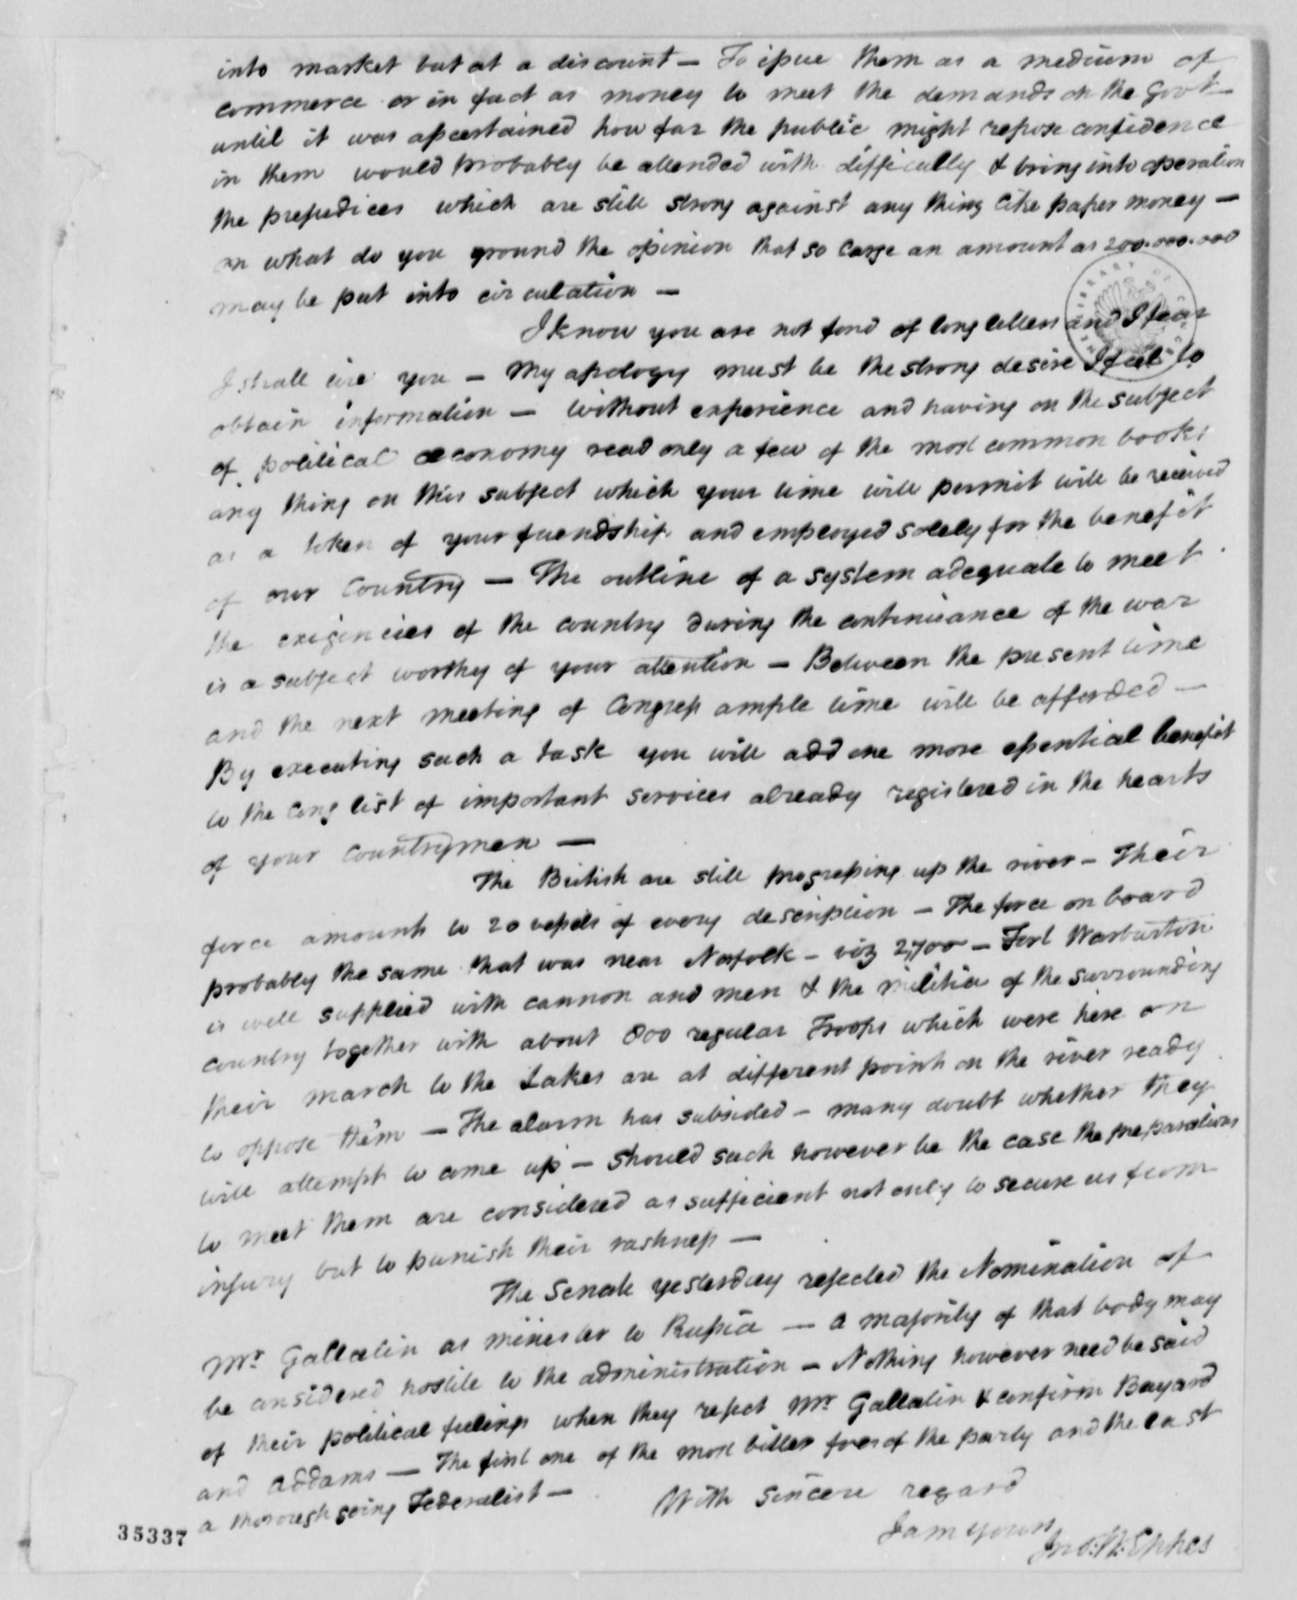 John Wayles Eppes to Thomas Jefferson, July 21, 1813